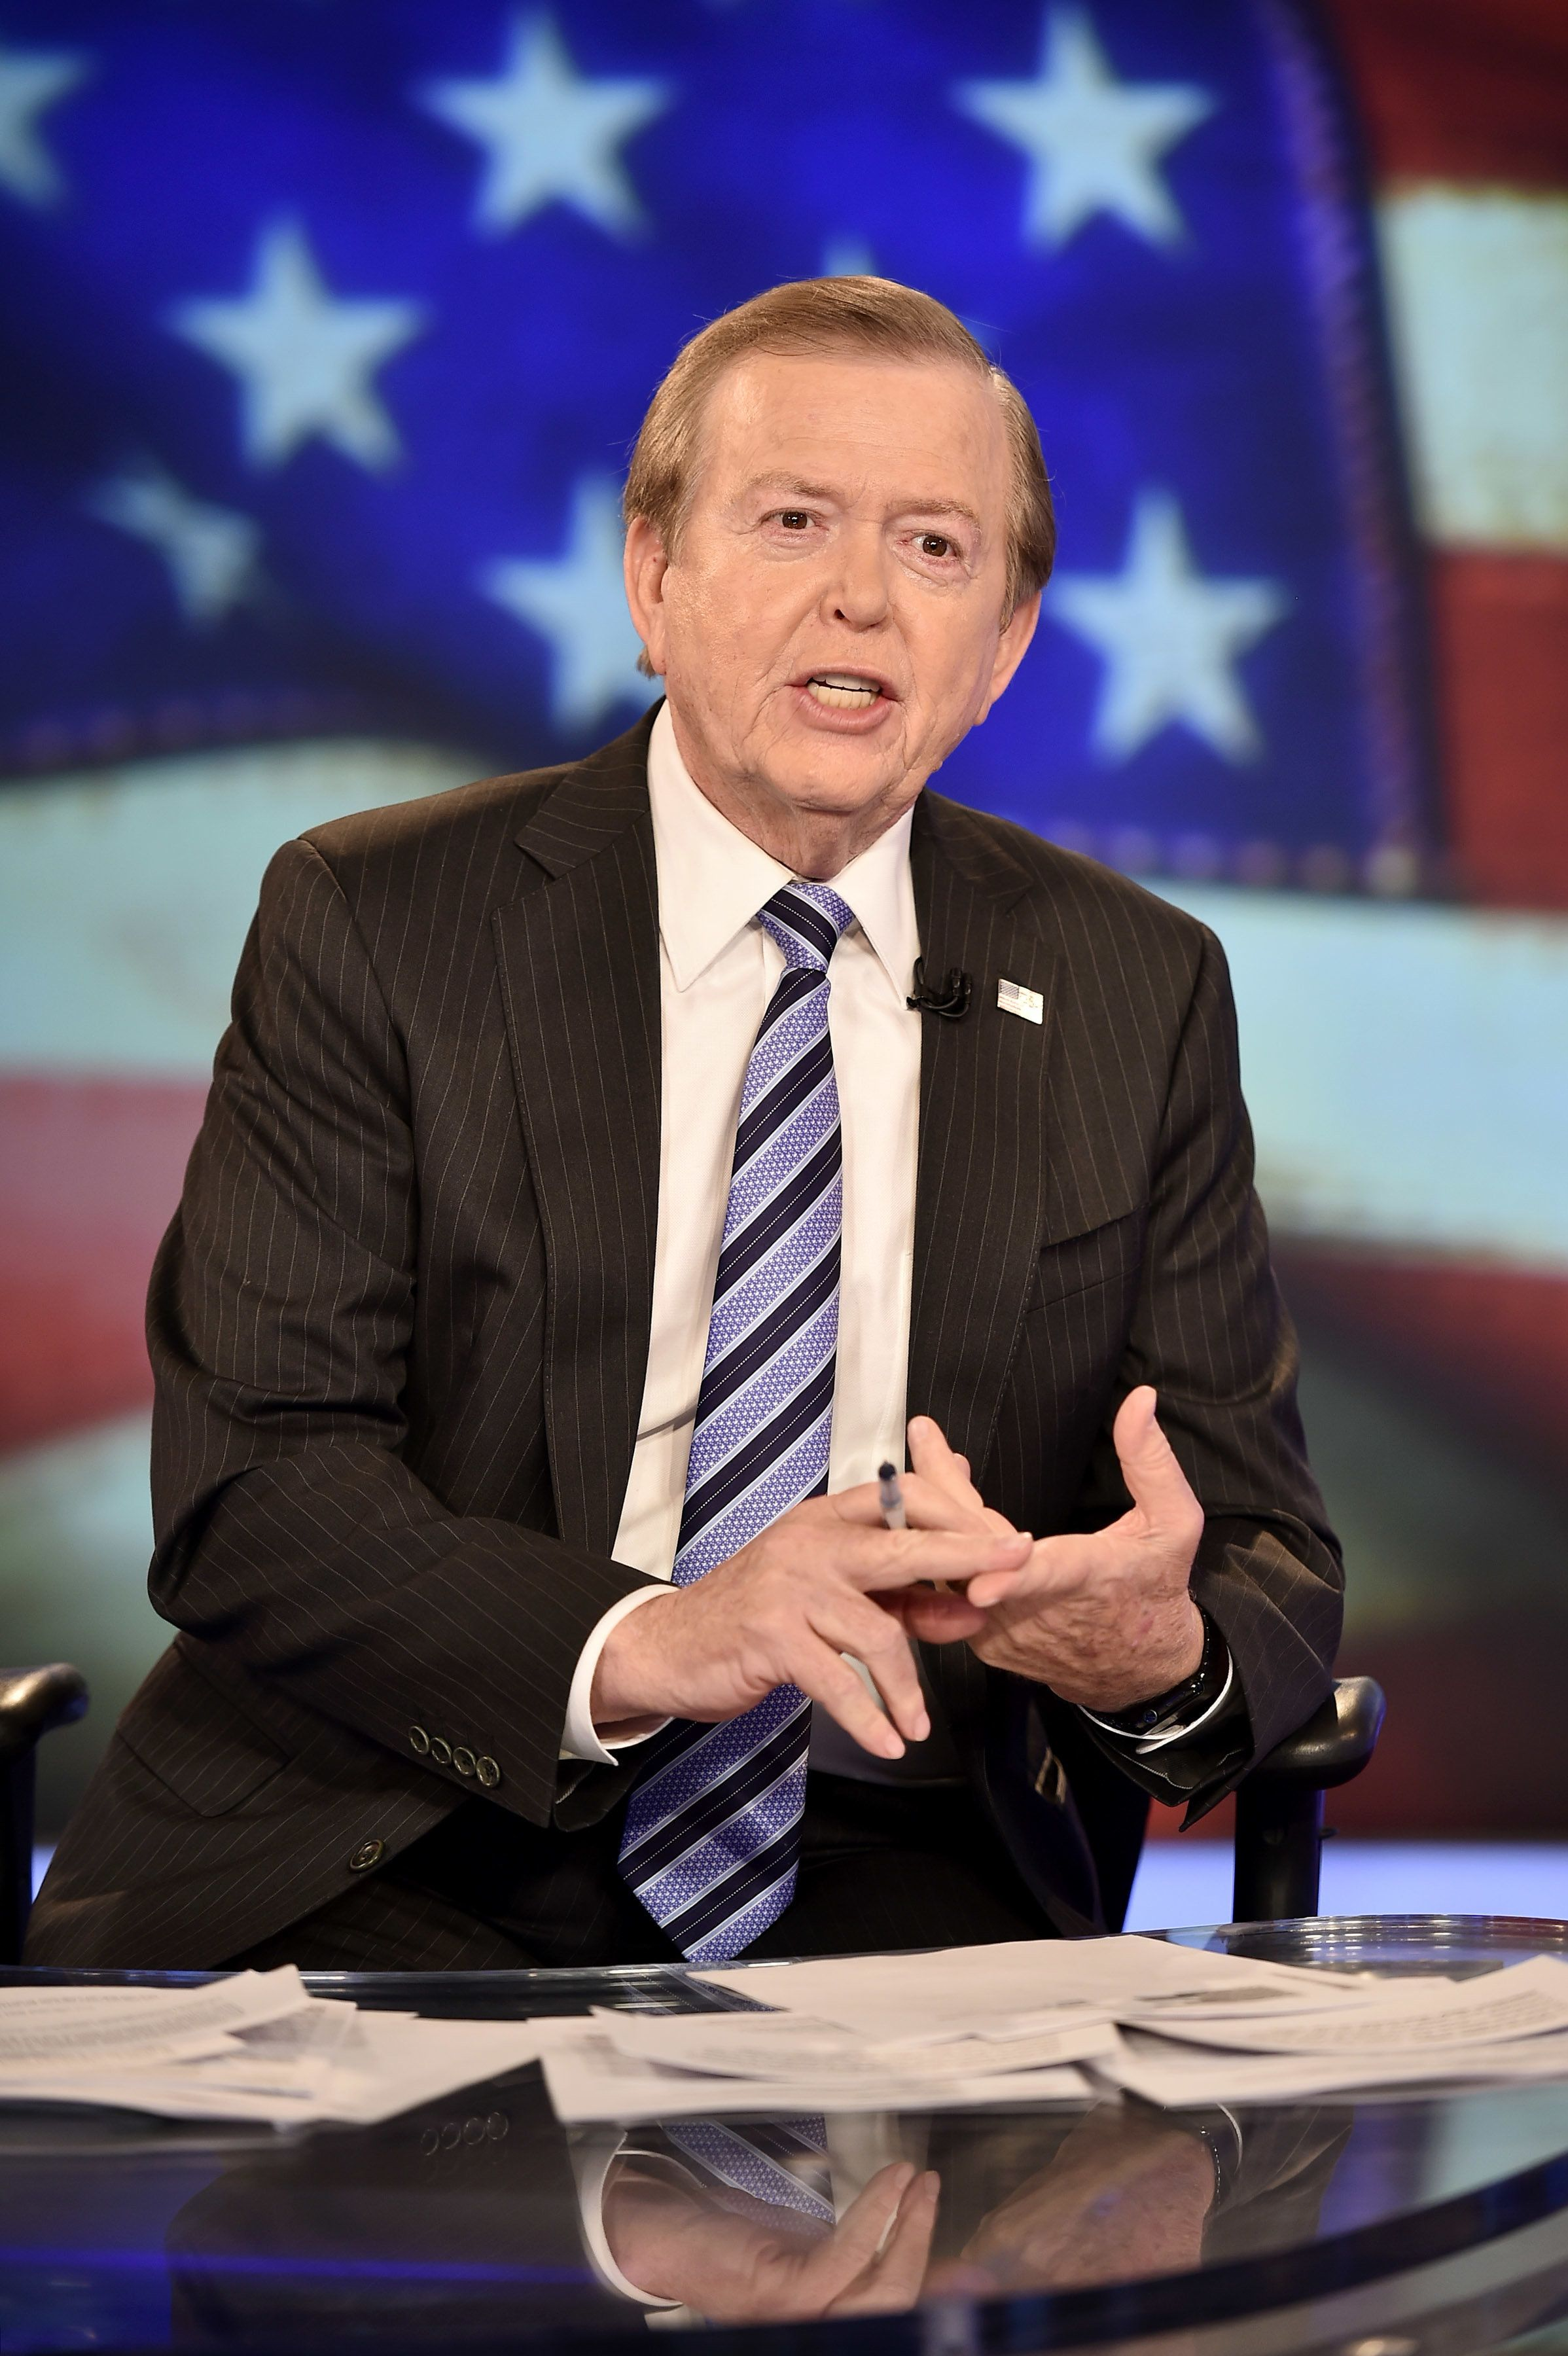 Lou Dobbs Fear-Mongers With Rant About Immigration Killing Millions Of